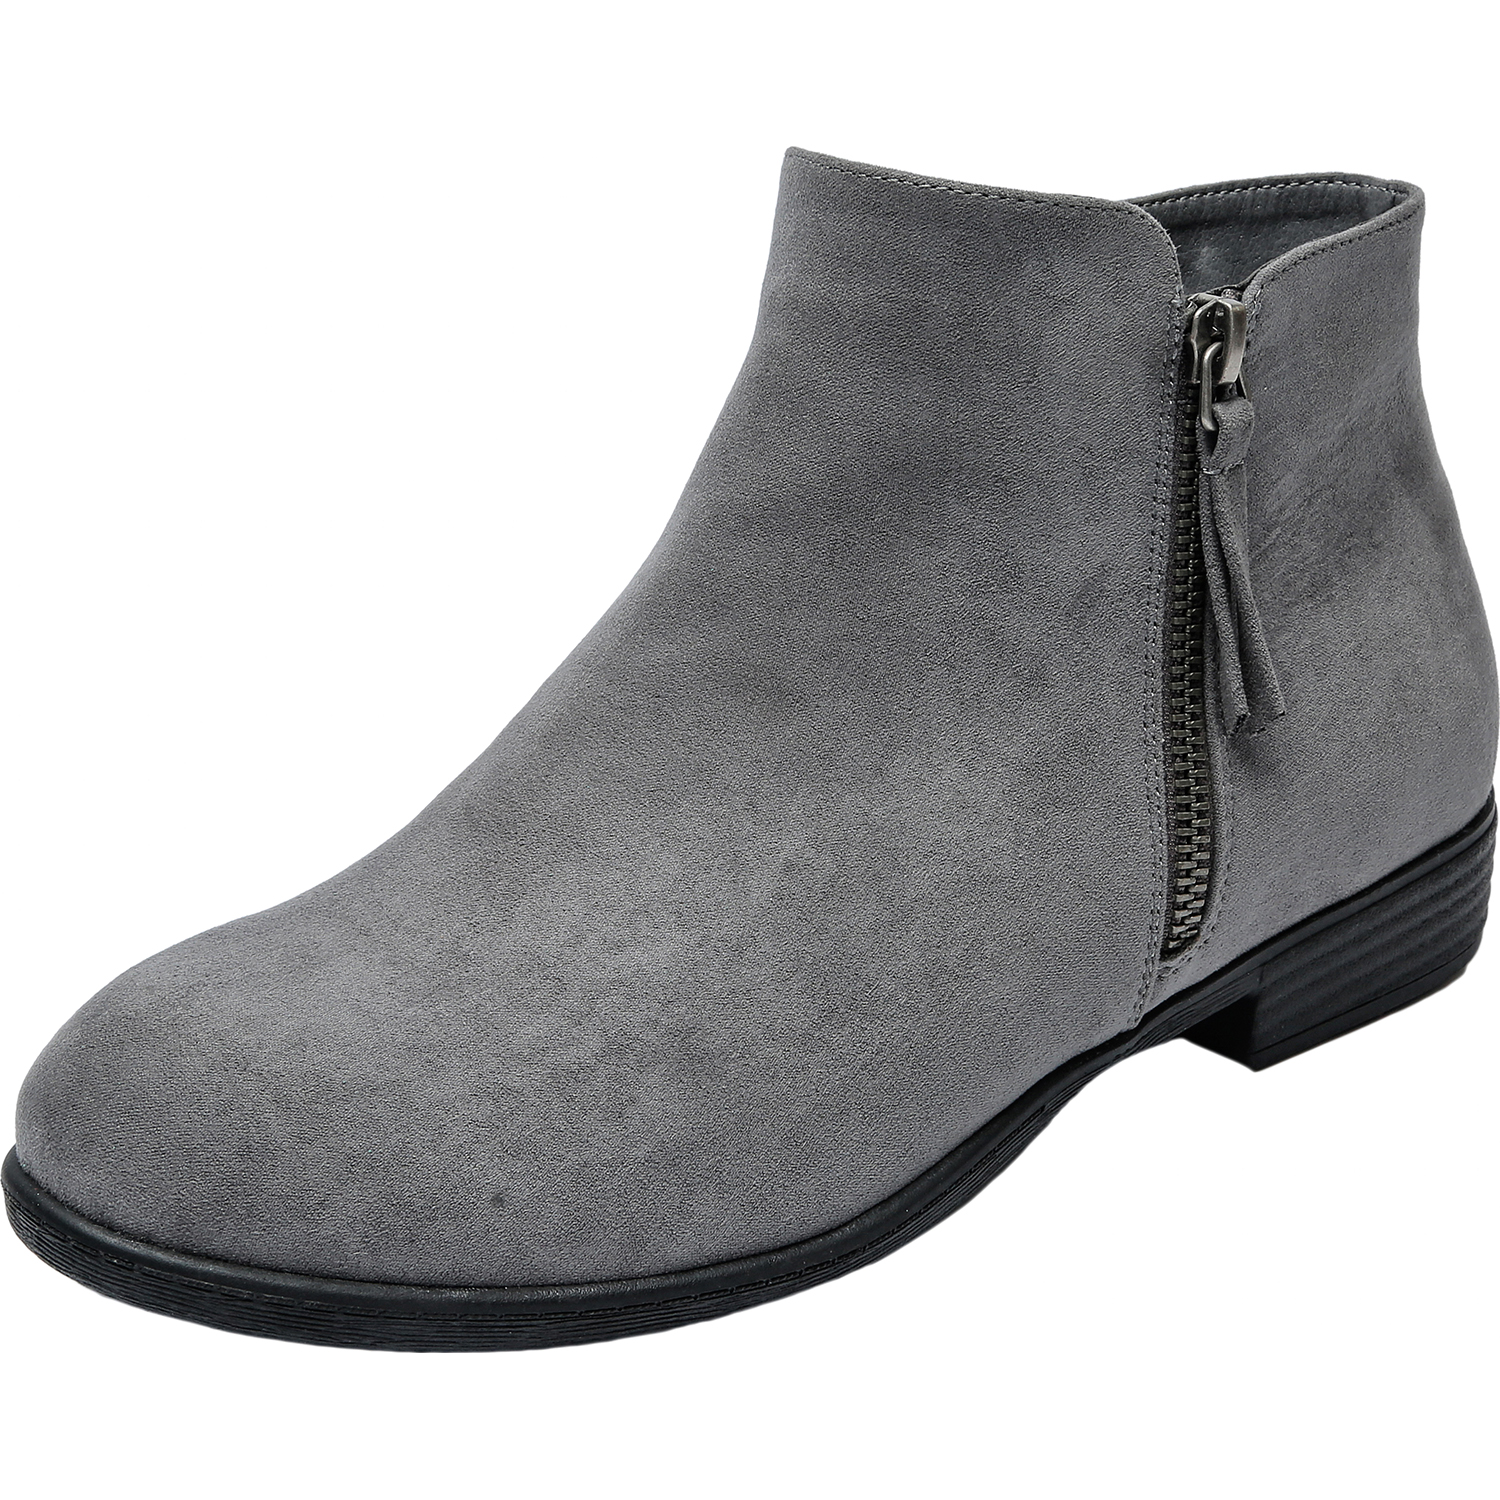 146c2ad63f61 US  49.99 - Luoika Women s Wide Width Ankle Booties - Classic Side Zipper  Low Stacked Heel Round Toe Suede Comfy Boots. - www.luoika-us.com